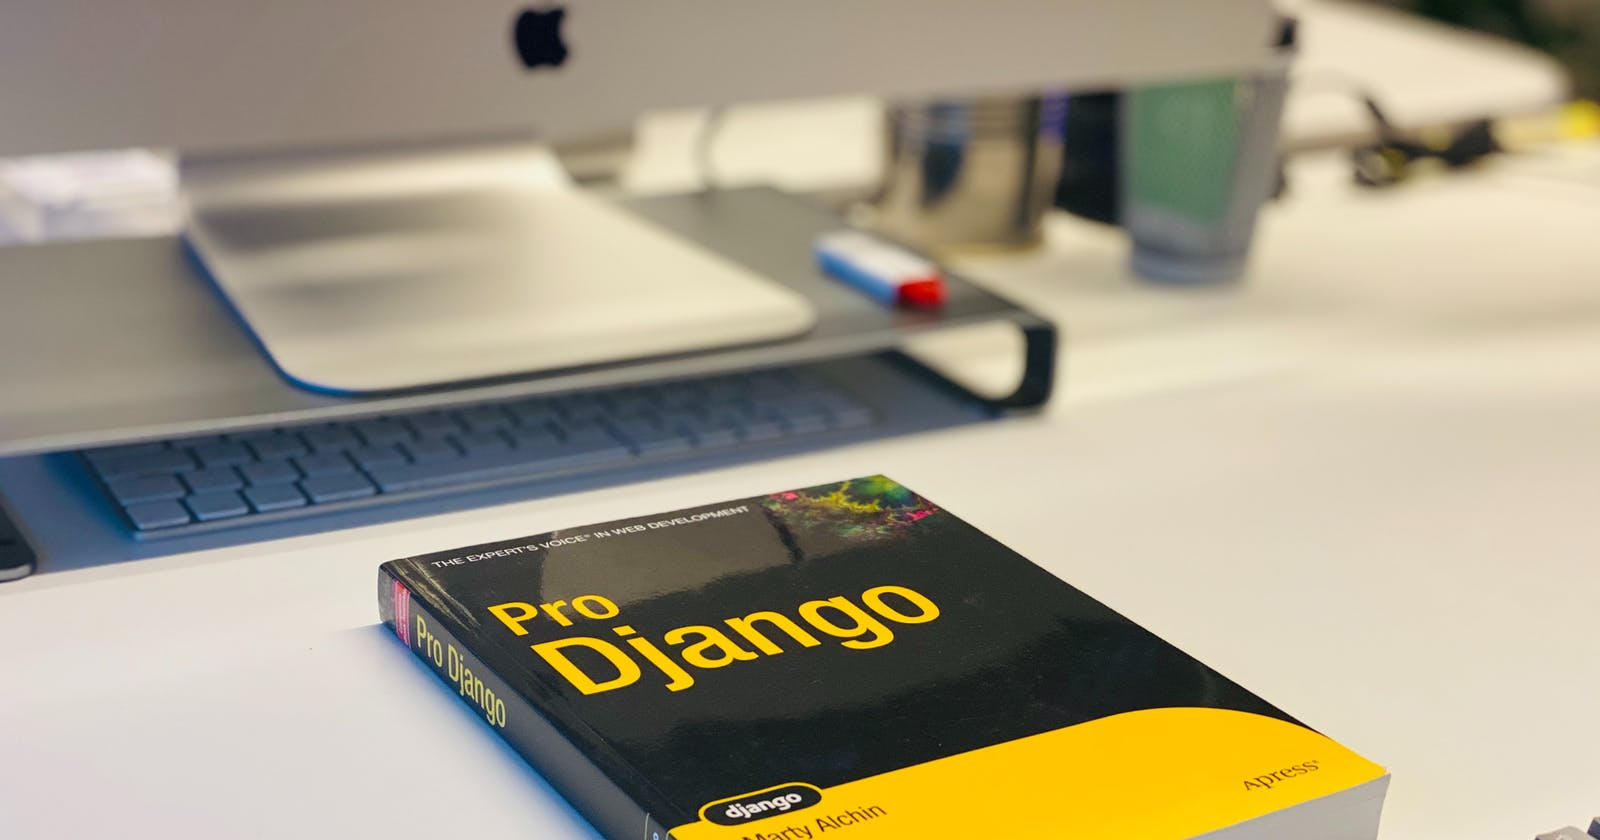 Setting up a basic Django Project with Pipenv